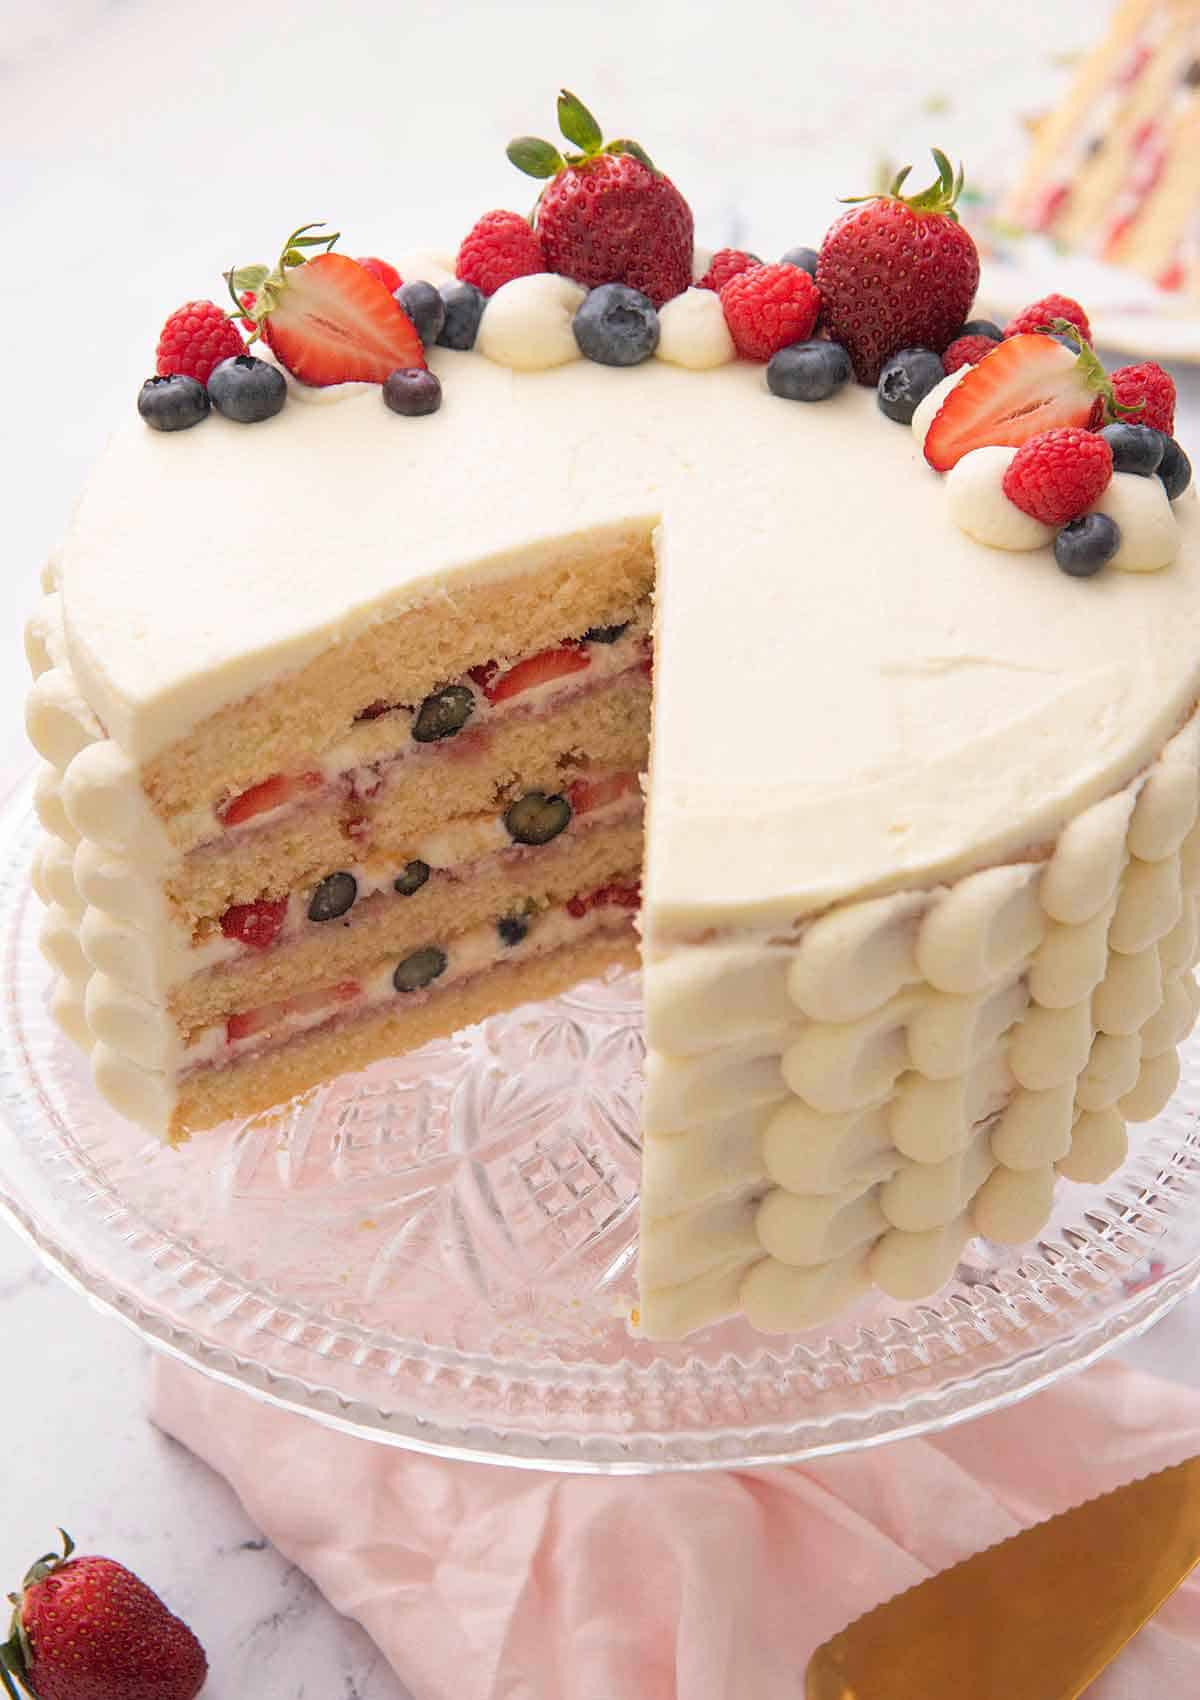 A Chantilly cake with a slice cut out showing the four tiers with berries in between.